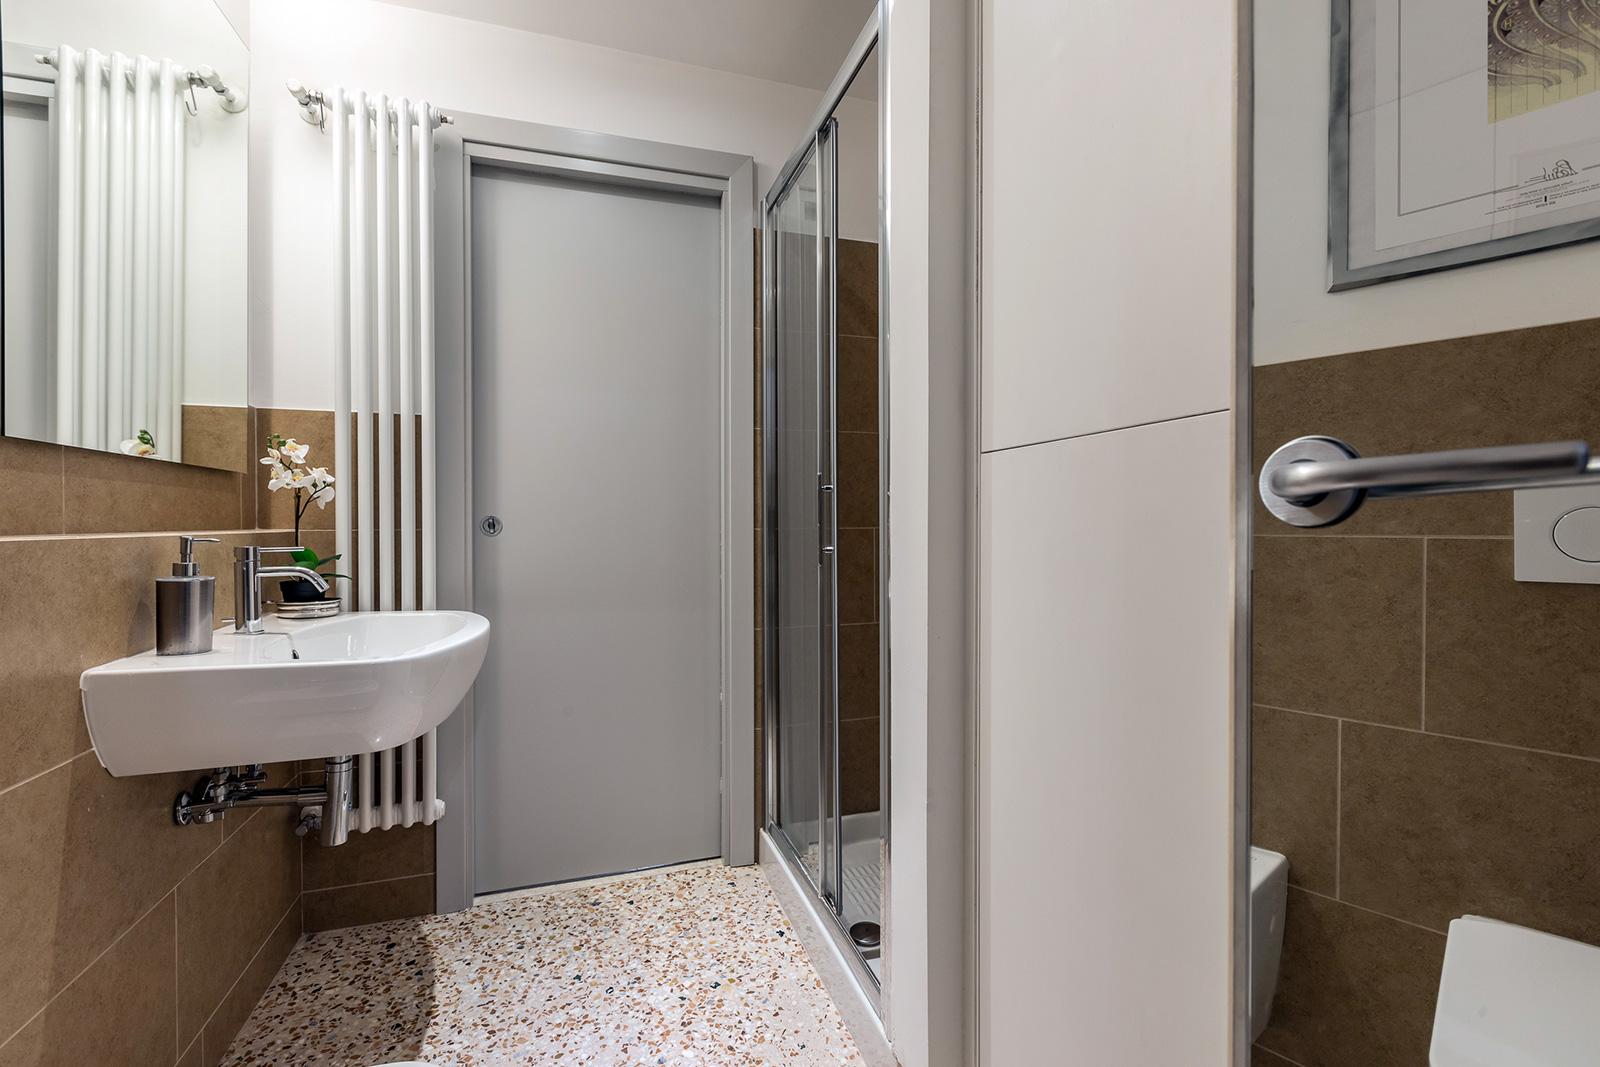 smaller second bathroom with shower, connected with the living and dining rooms